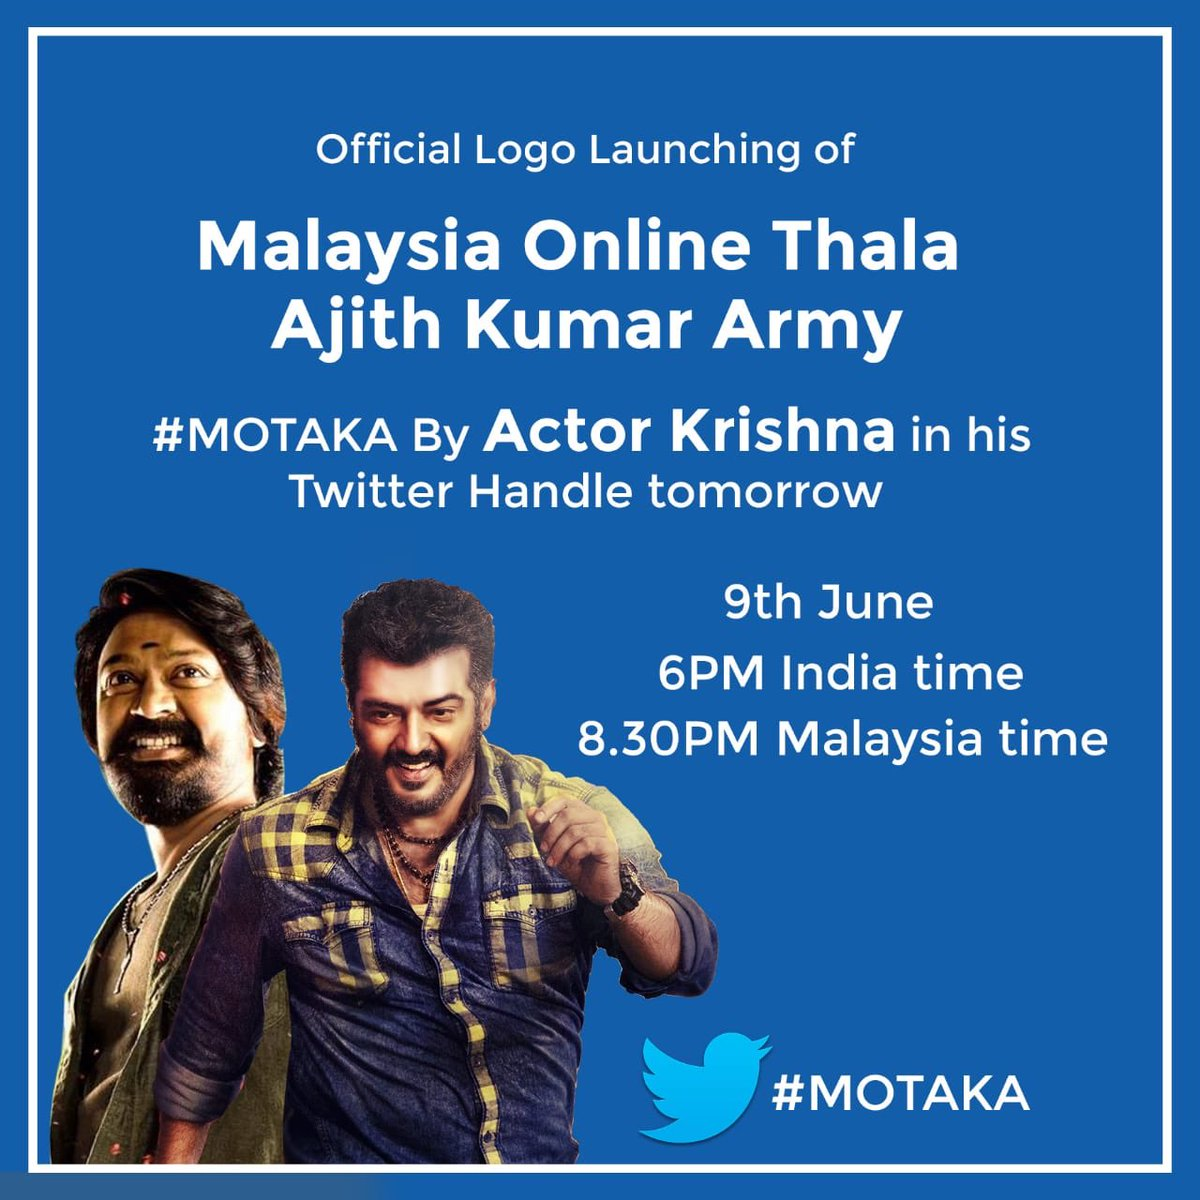 Malaysia Online Thala Ajith Kumar Army #MOTAKA Logo Will Launch By @Actor_Krishna Sir 🥳 Great News 🤩🤩🤩🤩 @ajith_nkp More To  Come. Announcement Poster Design By @madbirdstudio